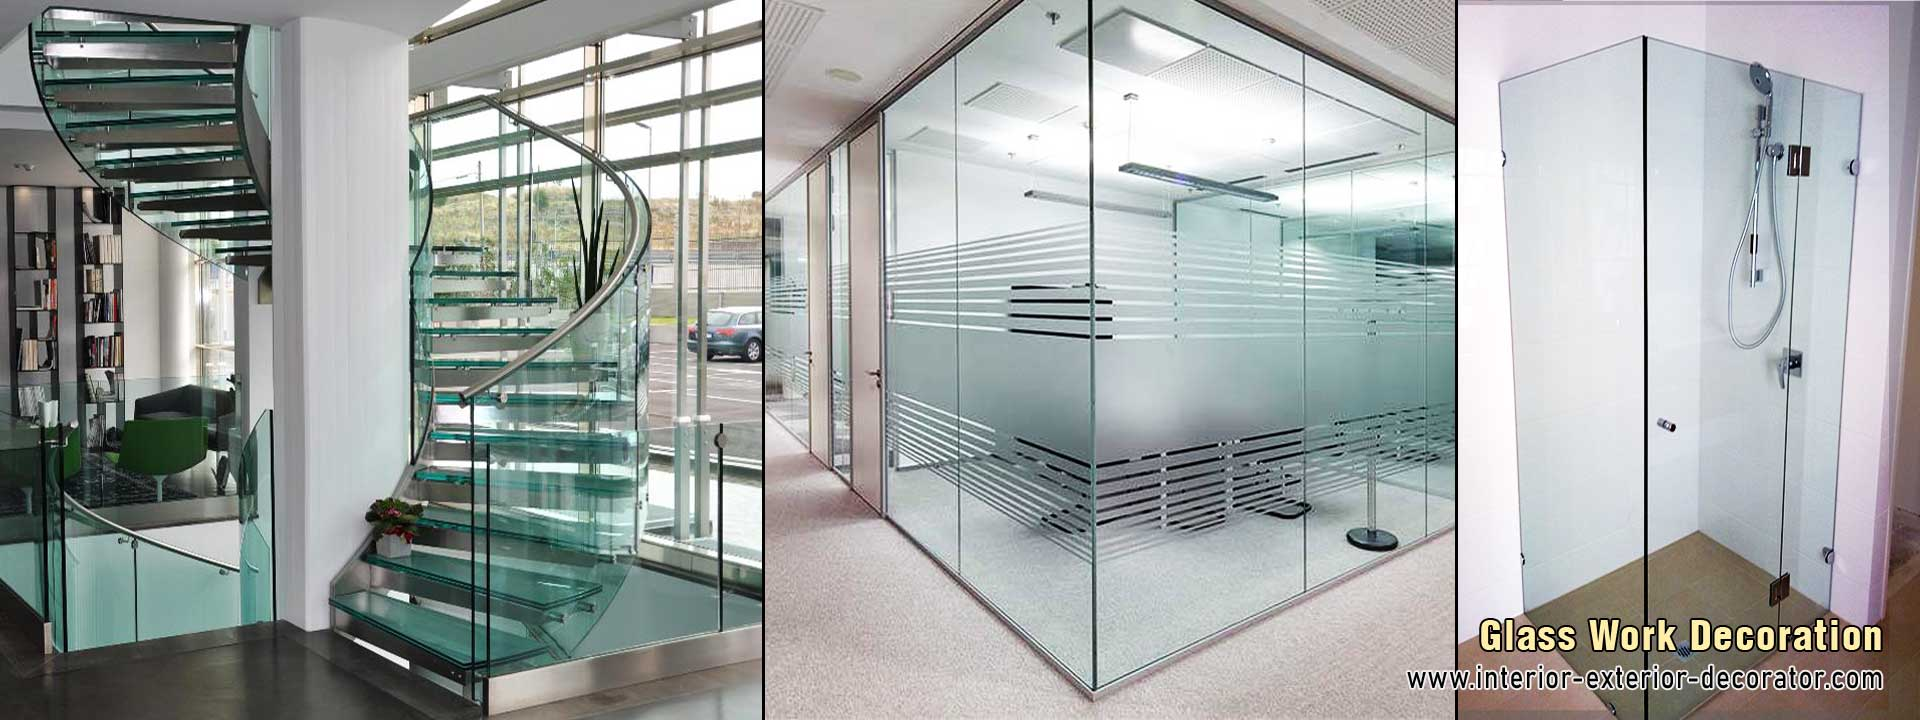 office glass partitions glass cabins glass work decoration manufacturers in ludhiana punjab india